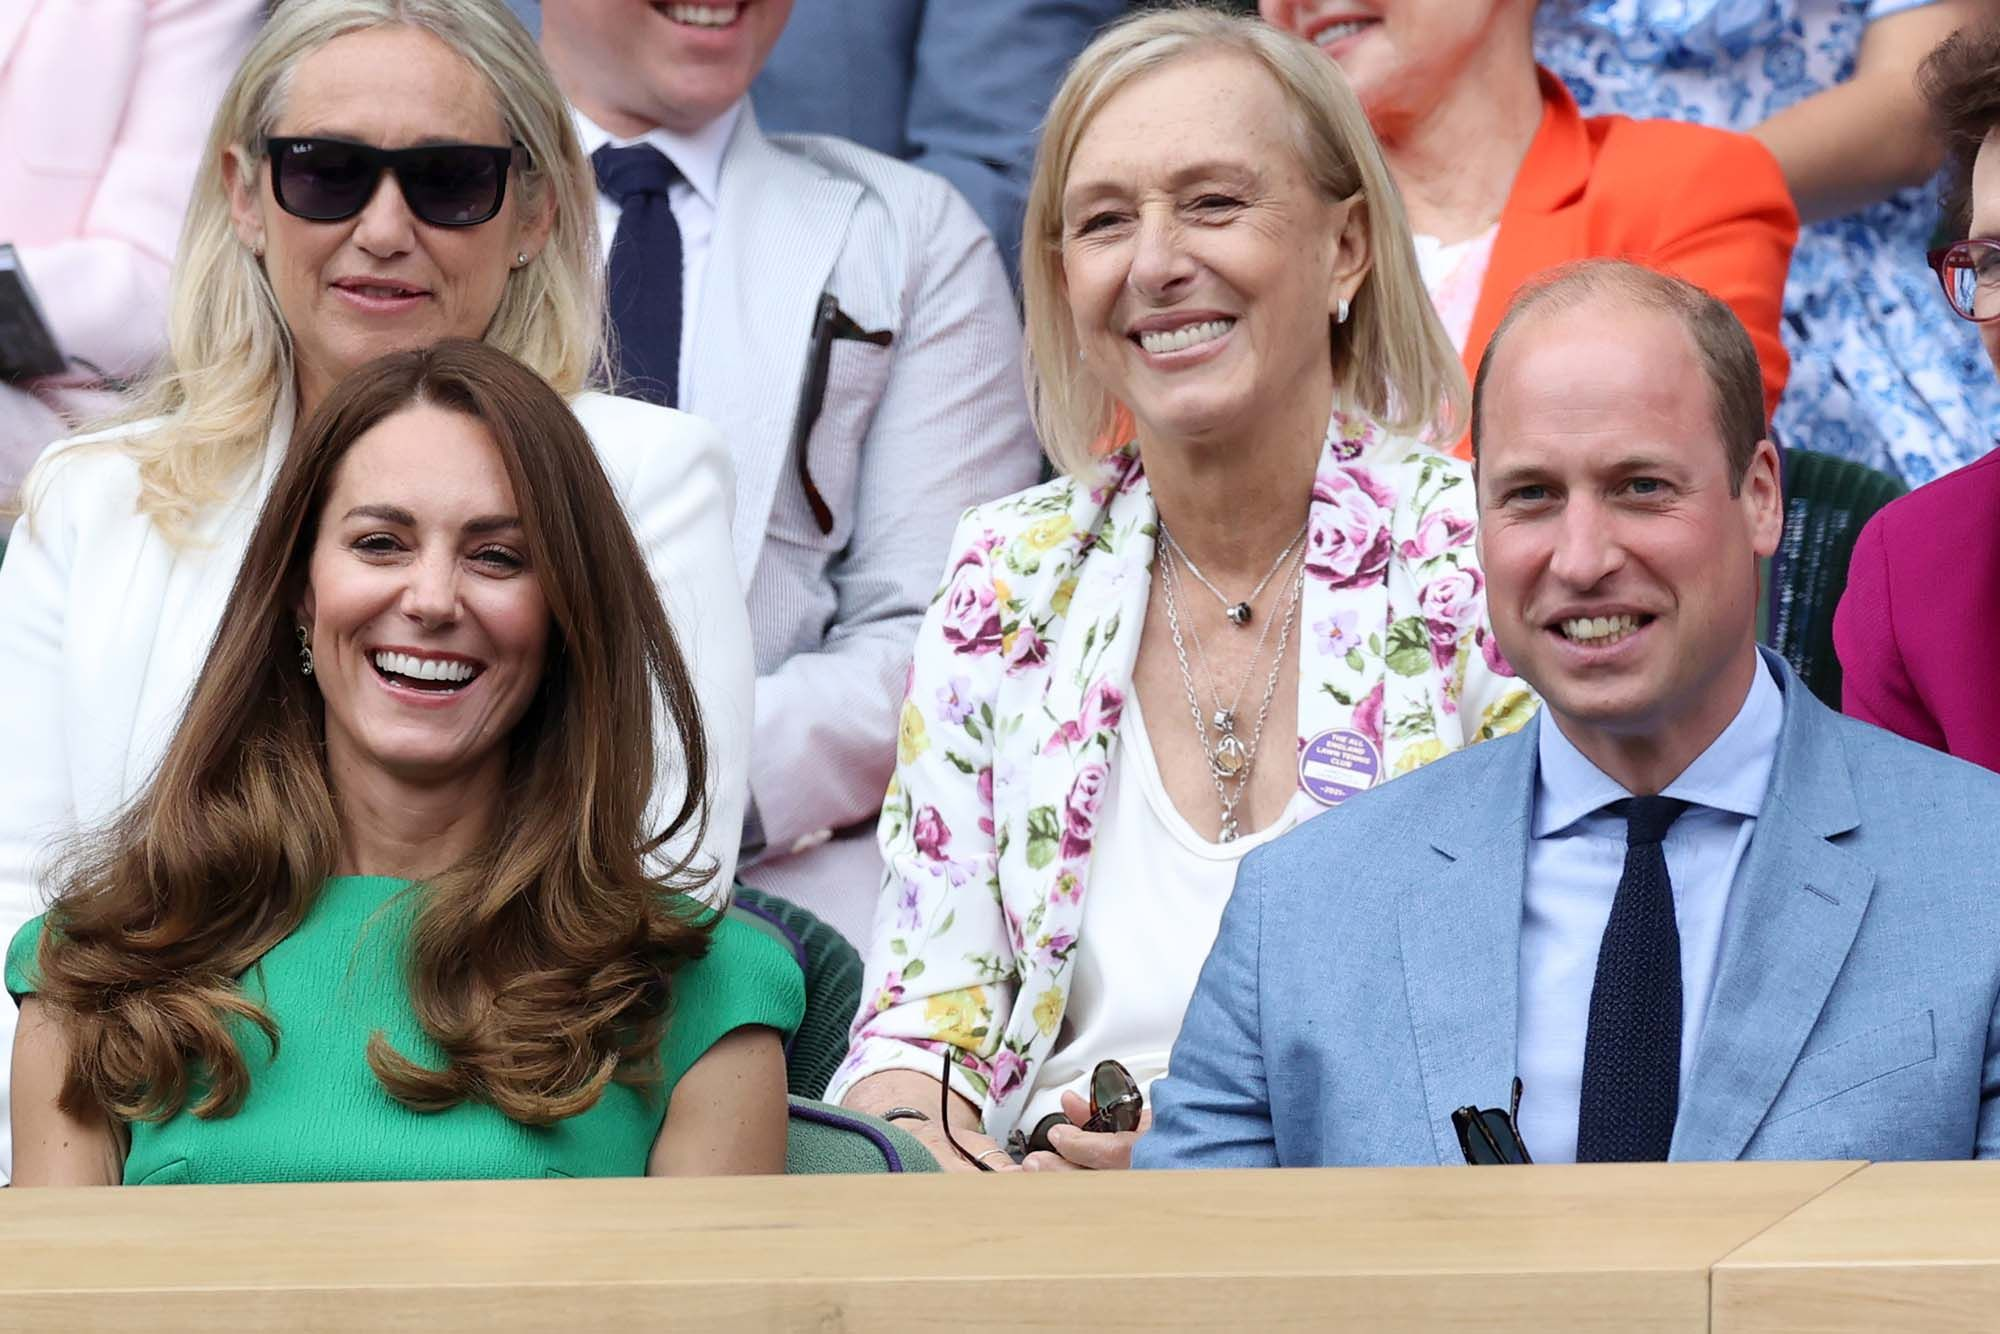 Prince William, Duke of Cambridge and Catherine, Duchess of Cambridge attend day 12 of the Wimbledon Tennis Championships. (Photo: WireImage)